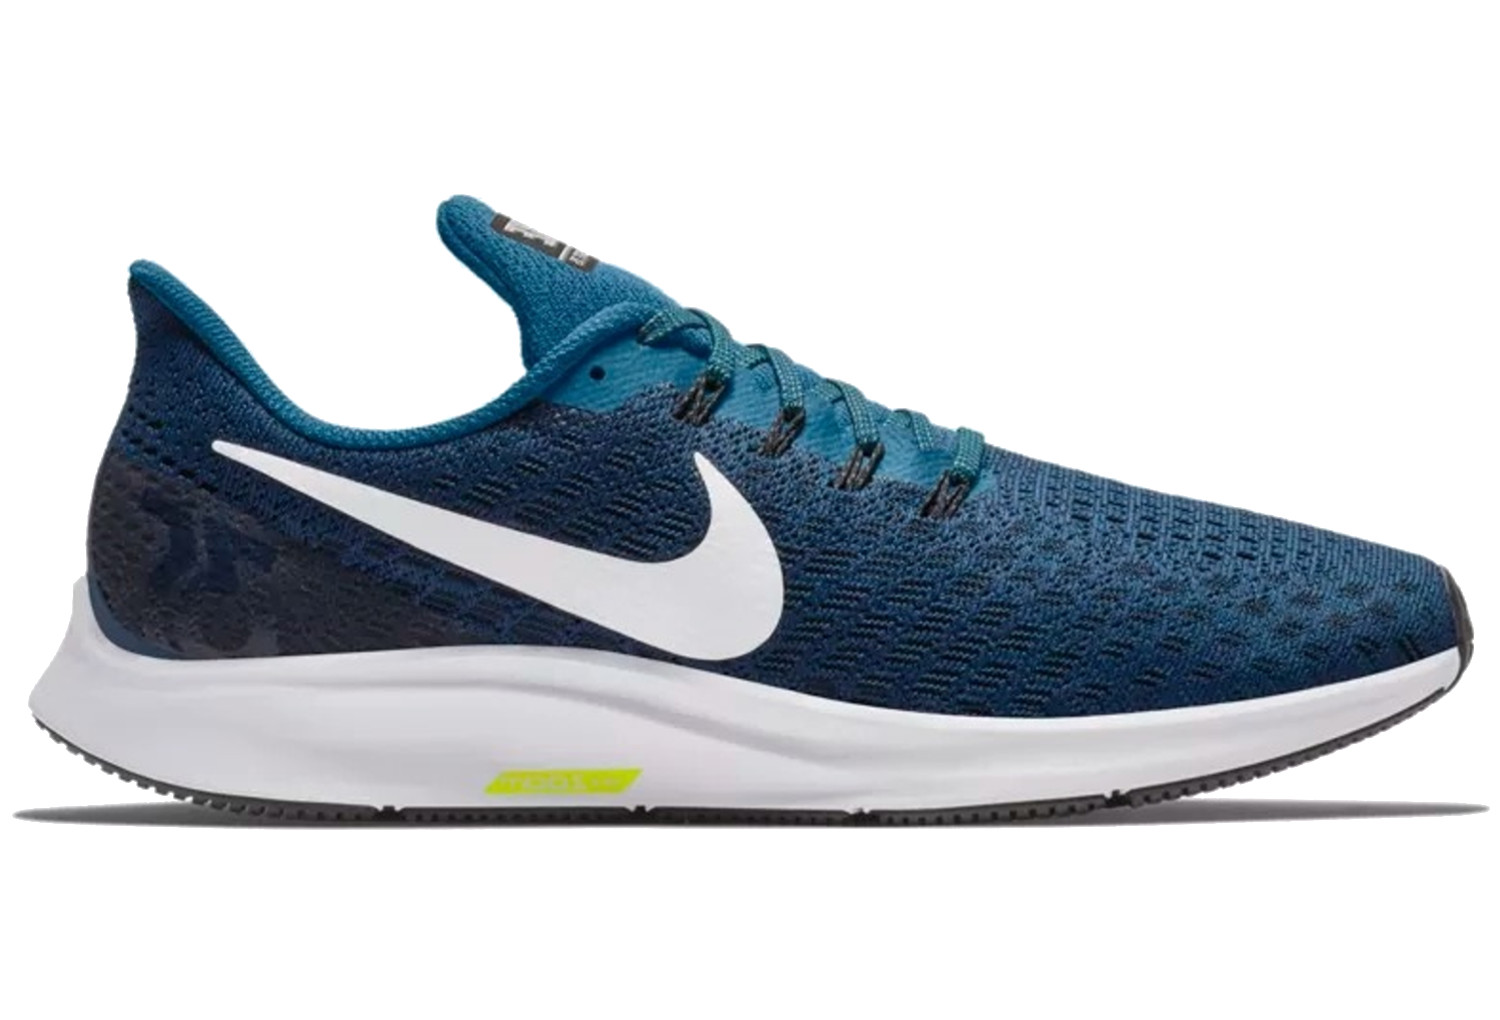 a9e1e6dd41dc6 Nike Air Zoom Pegasus 35 Shoes Blue Men